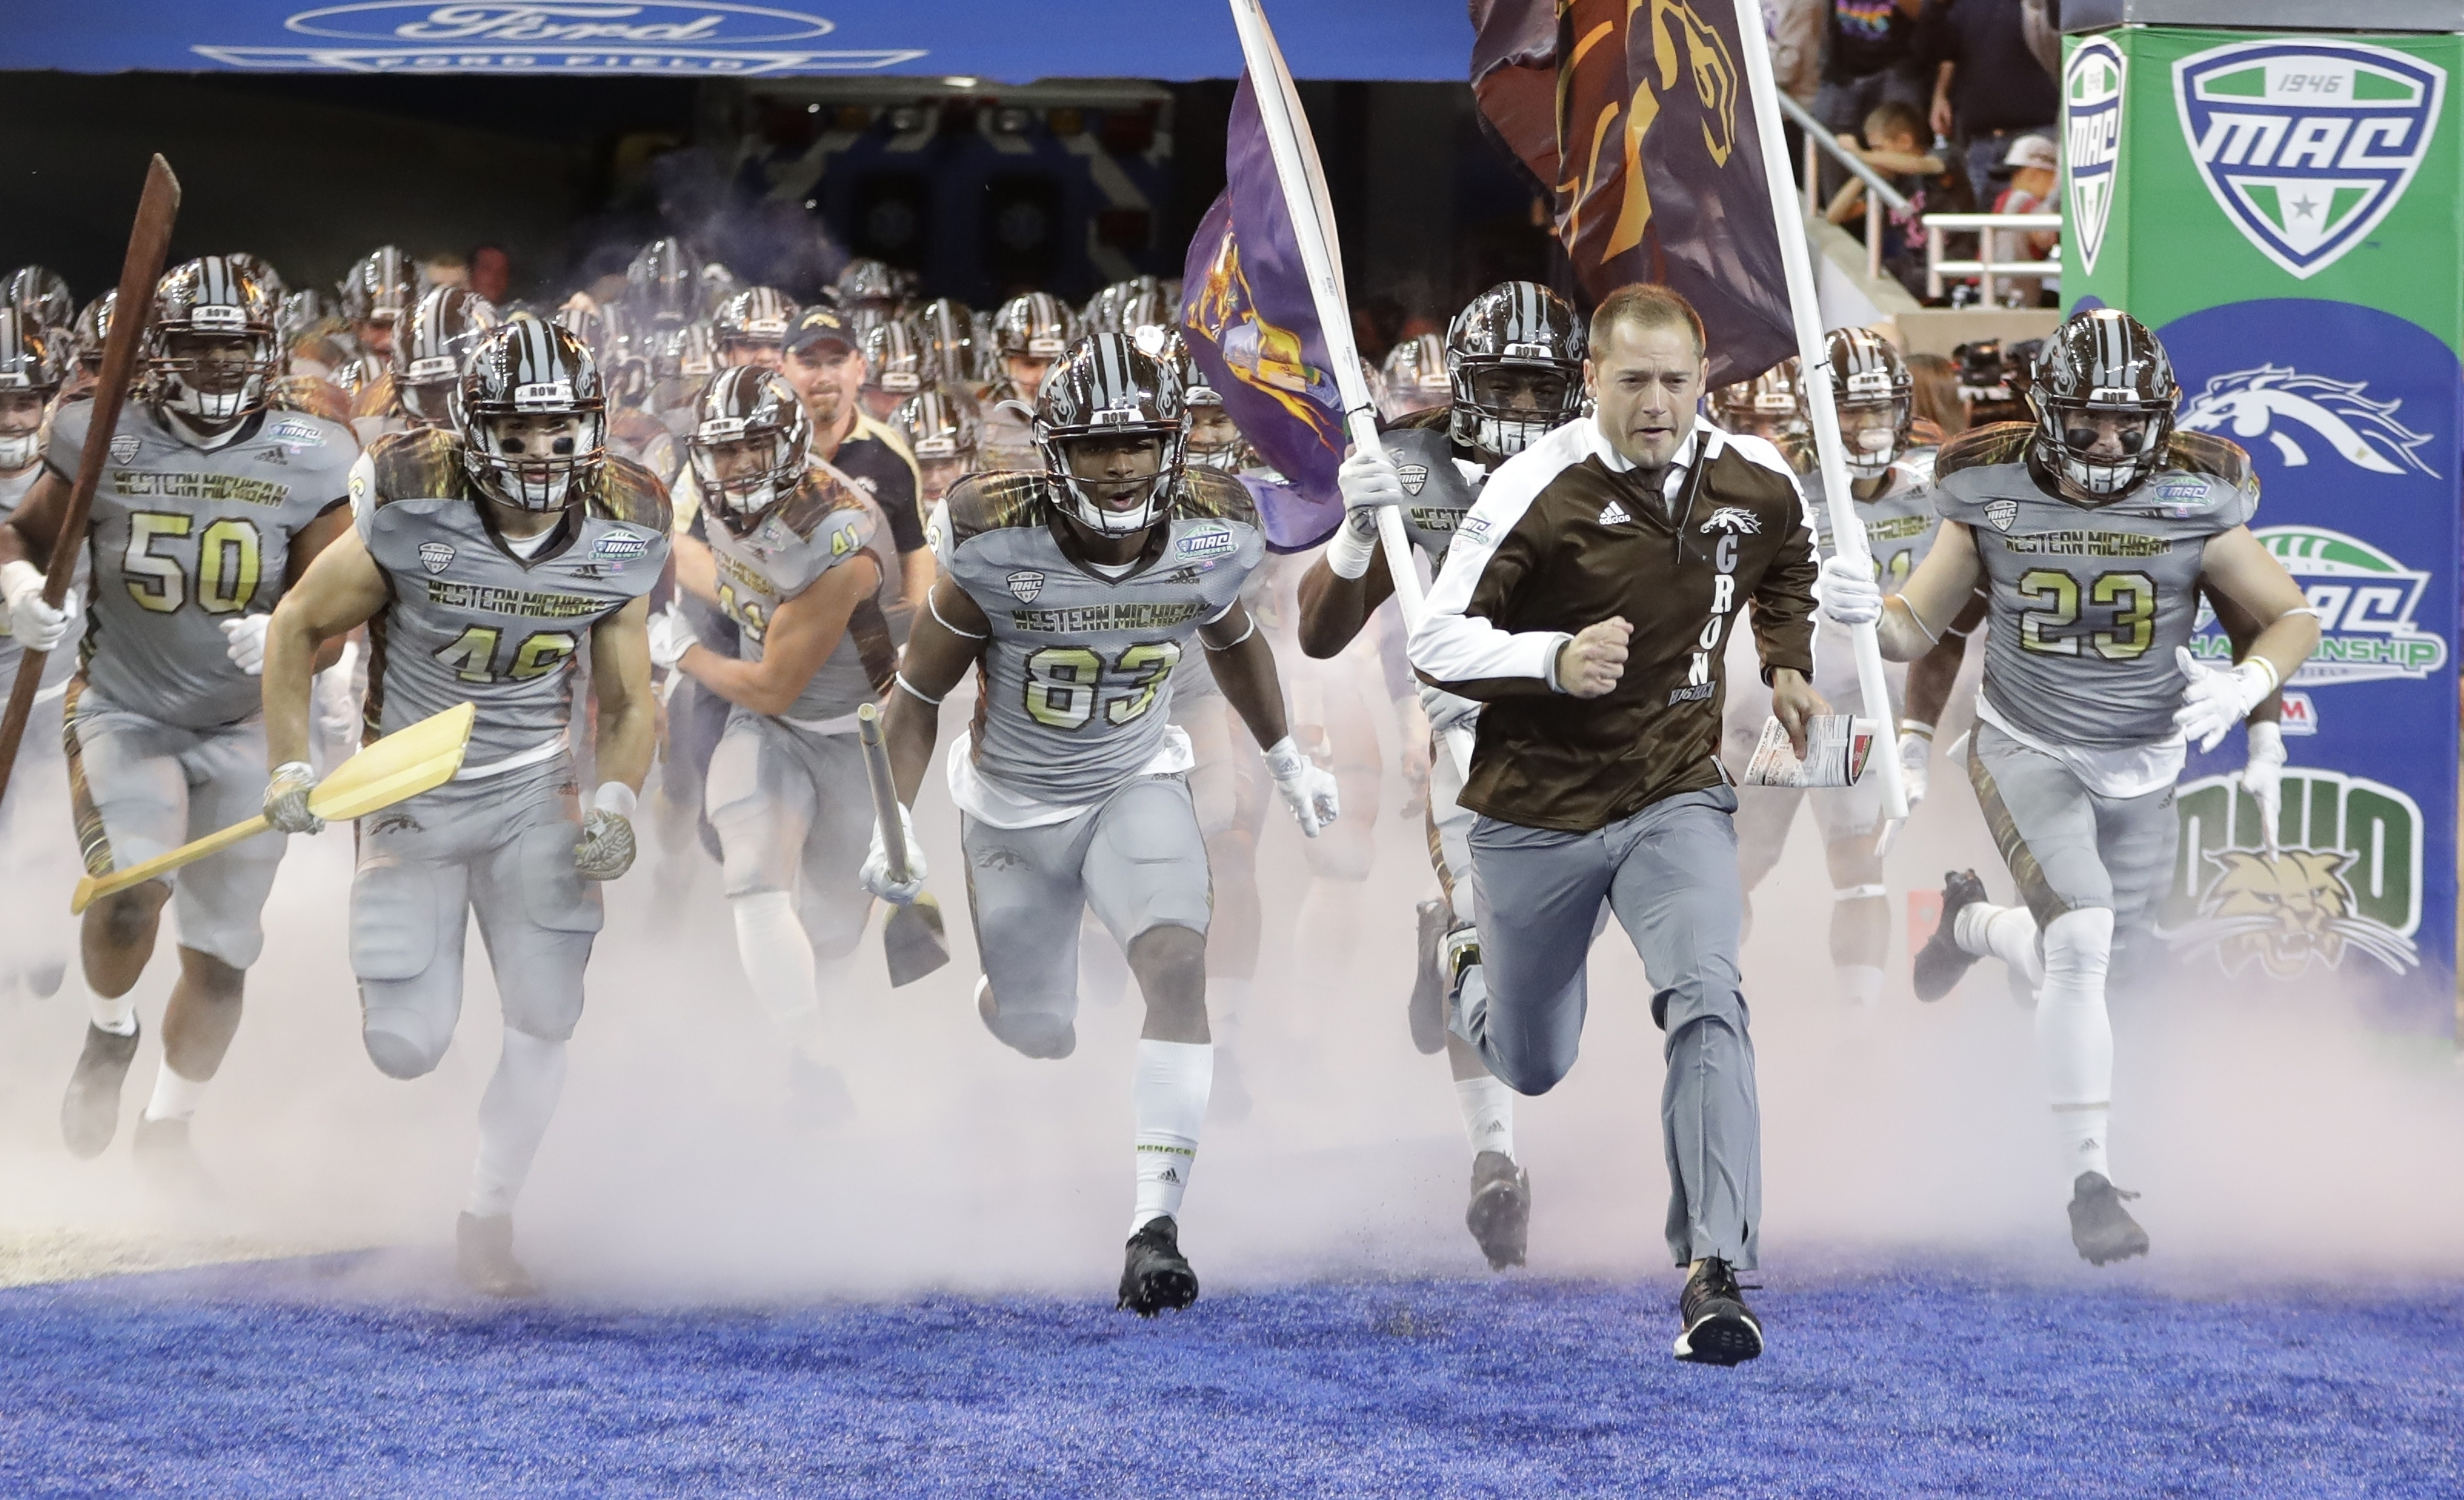 Western Michigan head coach P.J. Fleck runs onto the field with his team before the Mid-American Conference championship NCAA college football game against Ohio, Friday, Dec. 2, 2016, in Detroit. (AP Photo/Carlos Osorio)